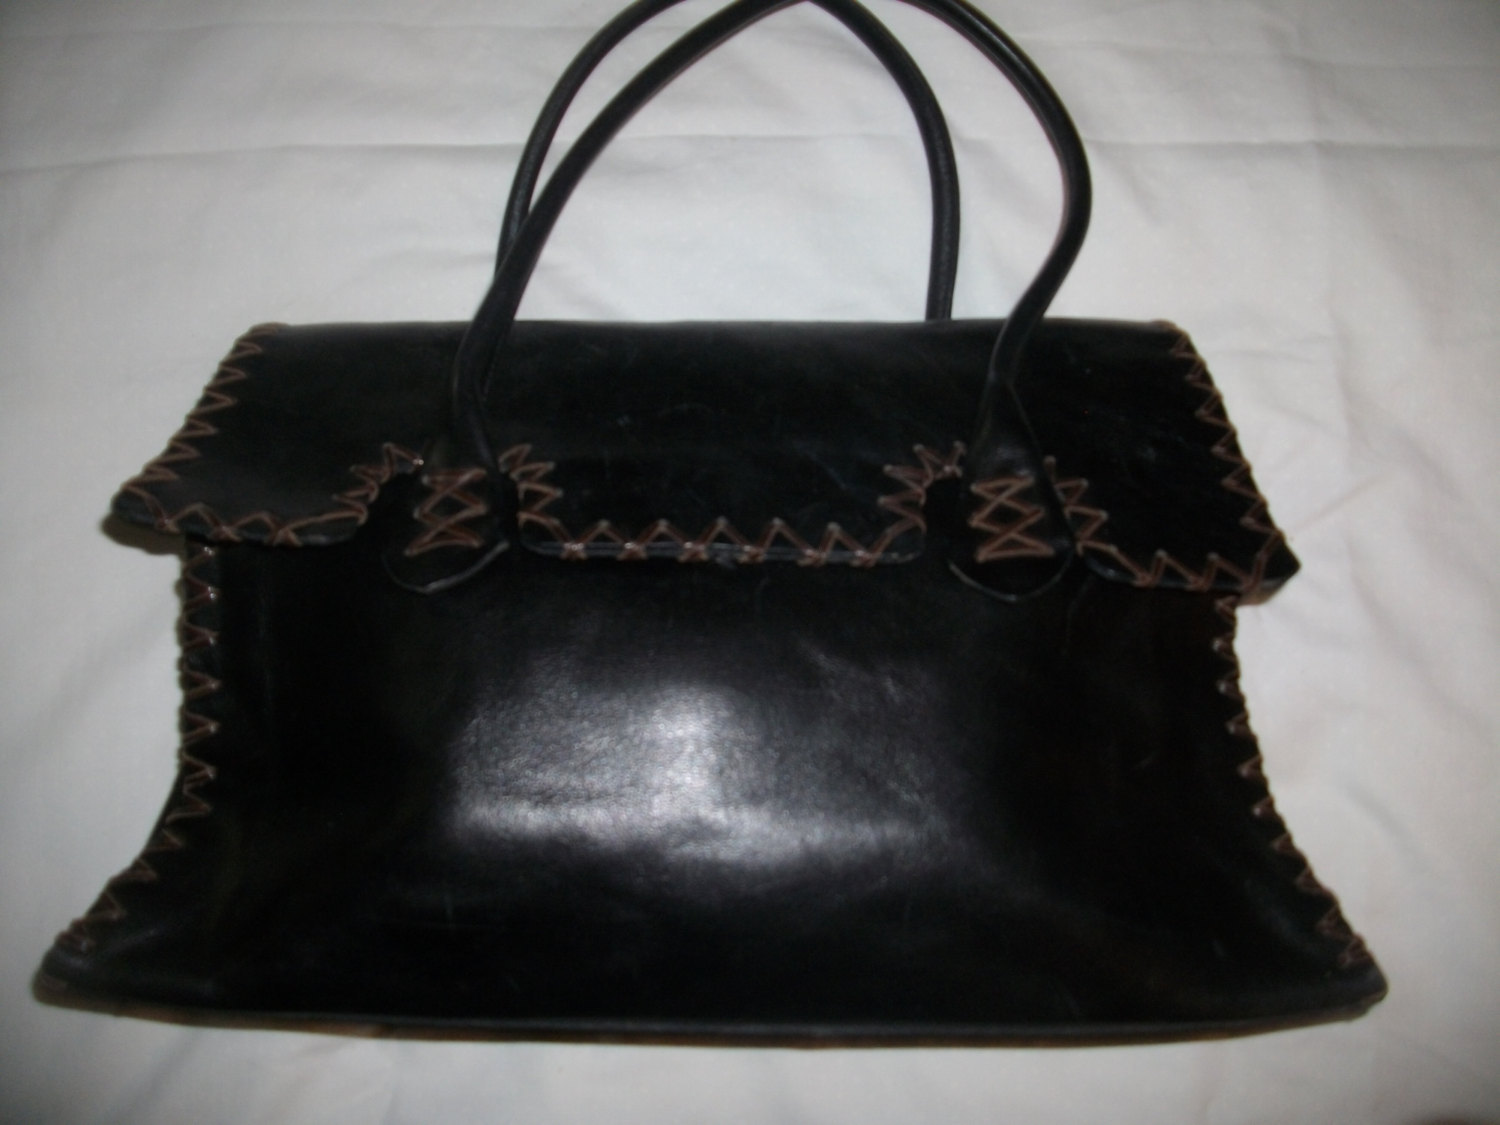 51a8b585a607 TANO New York Leather Stiched Black Tote Bag -  65.00